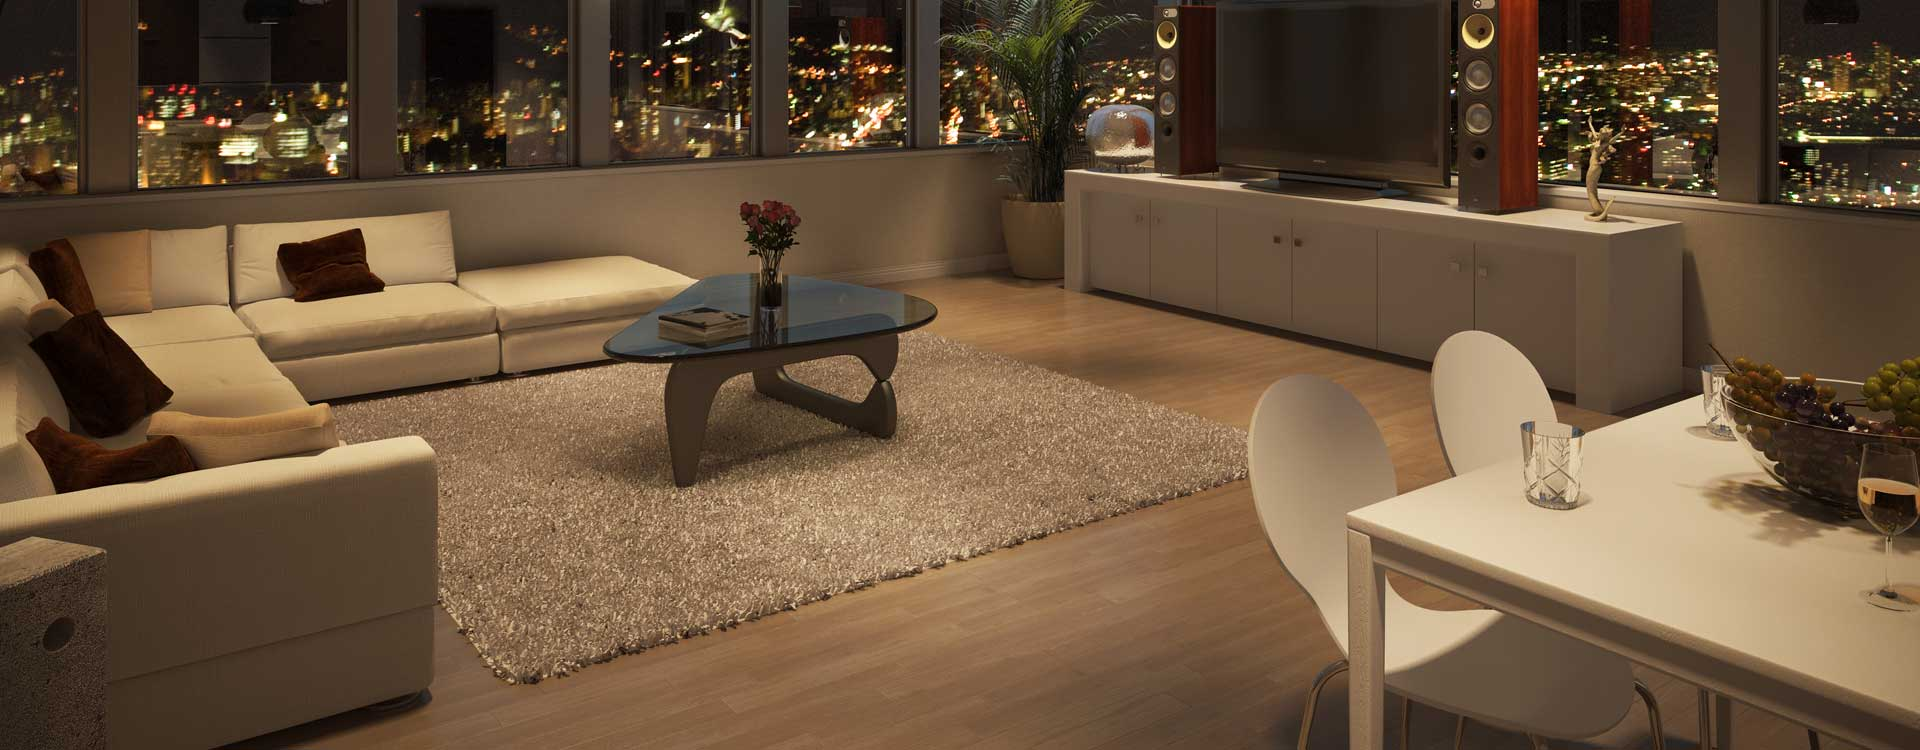 Quality Furniture Quality Furniture In Lebanon Pa With